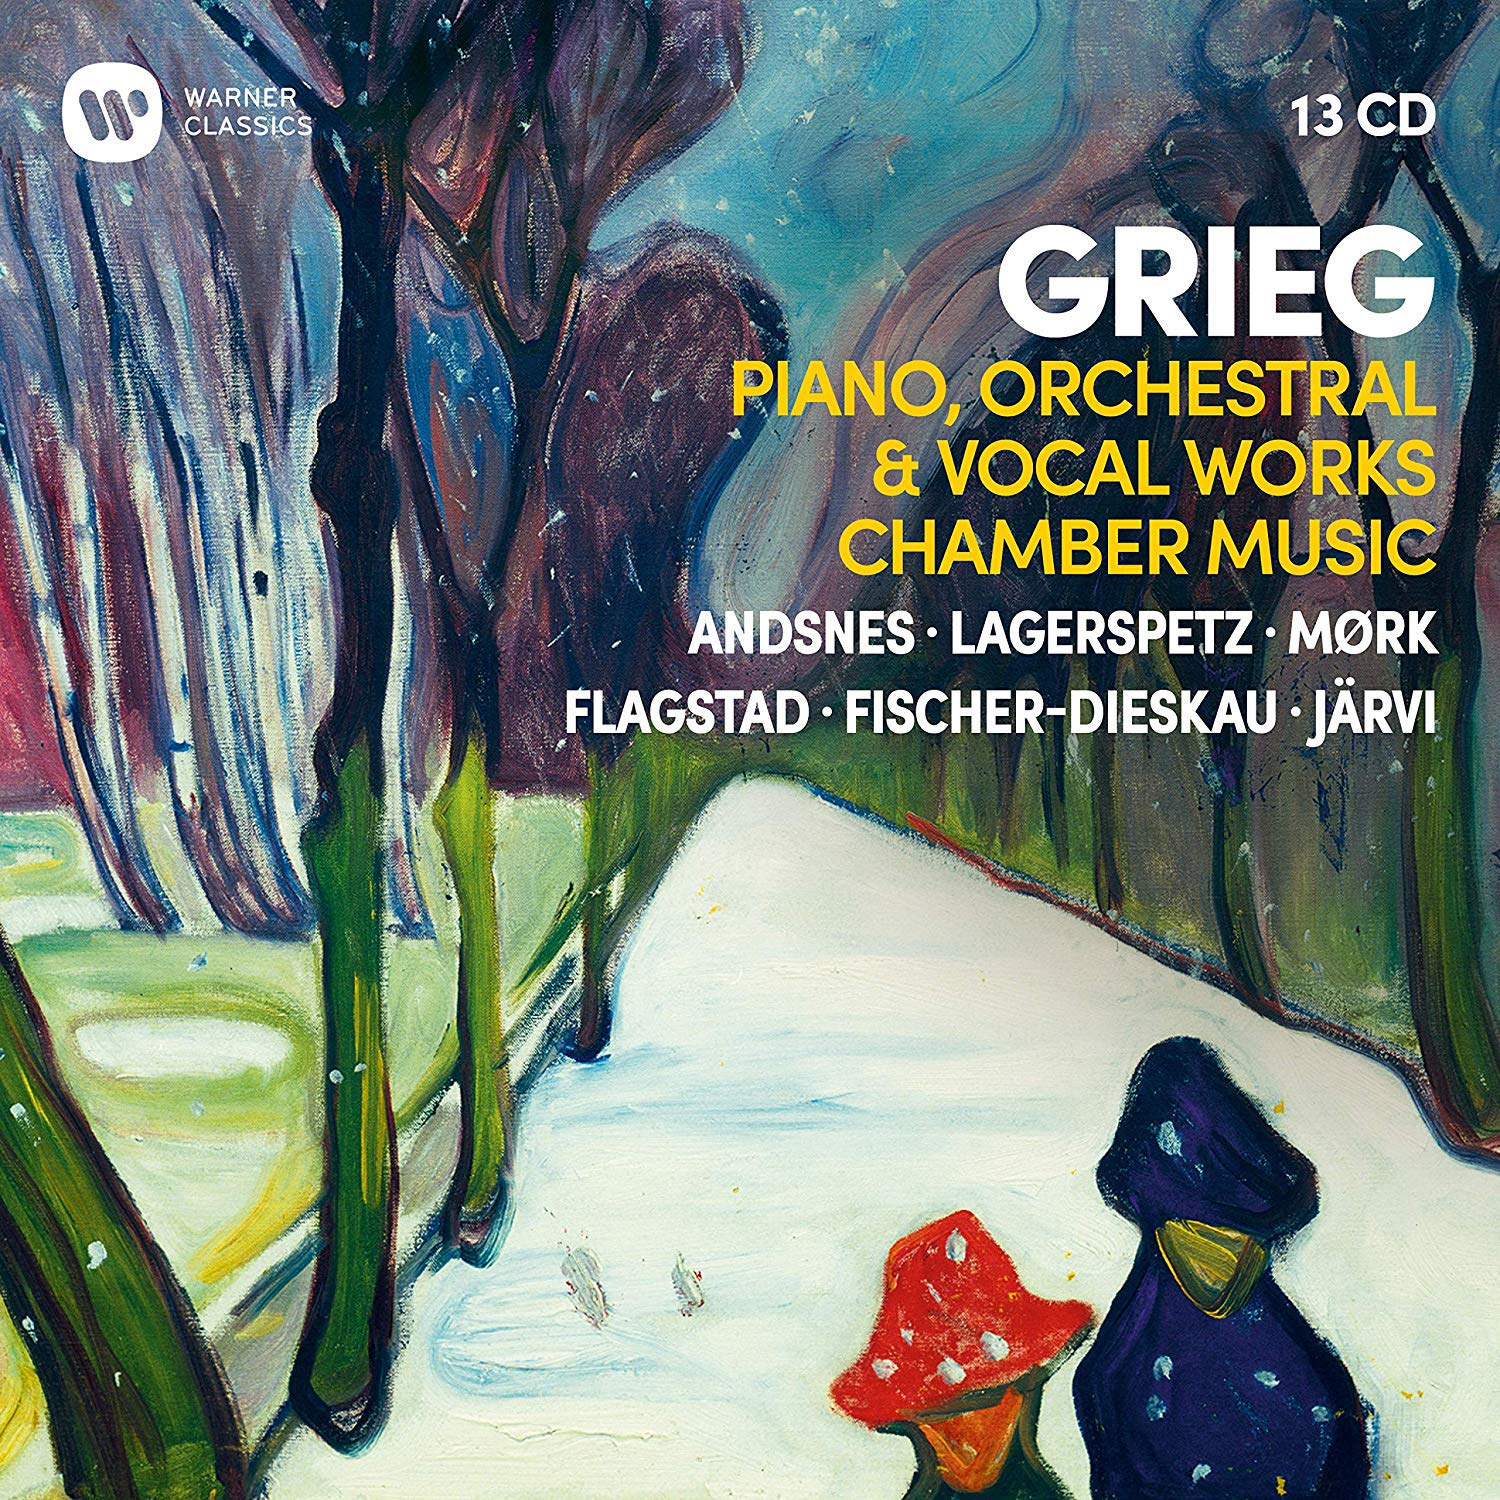 Grieg - Piano, Orchestral & Vocal Works, Chamber Music thumbnail